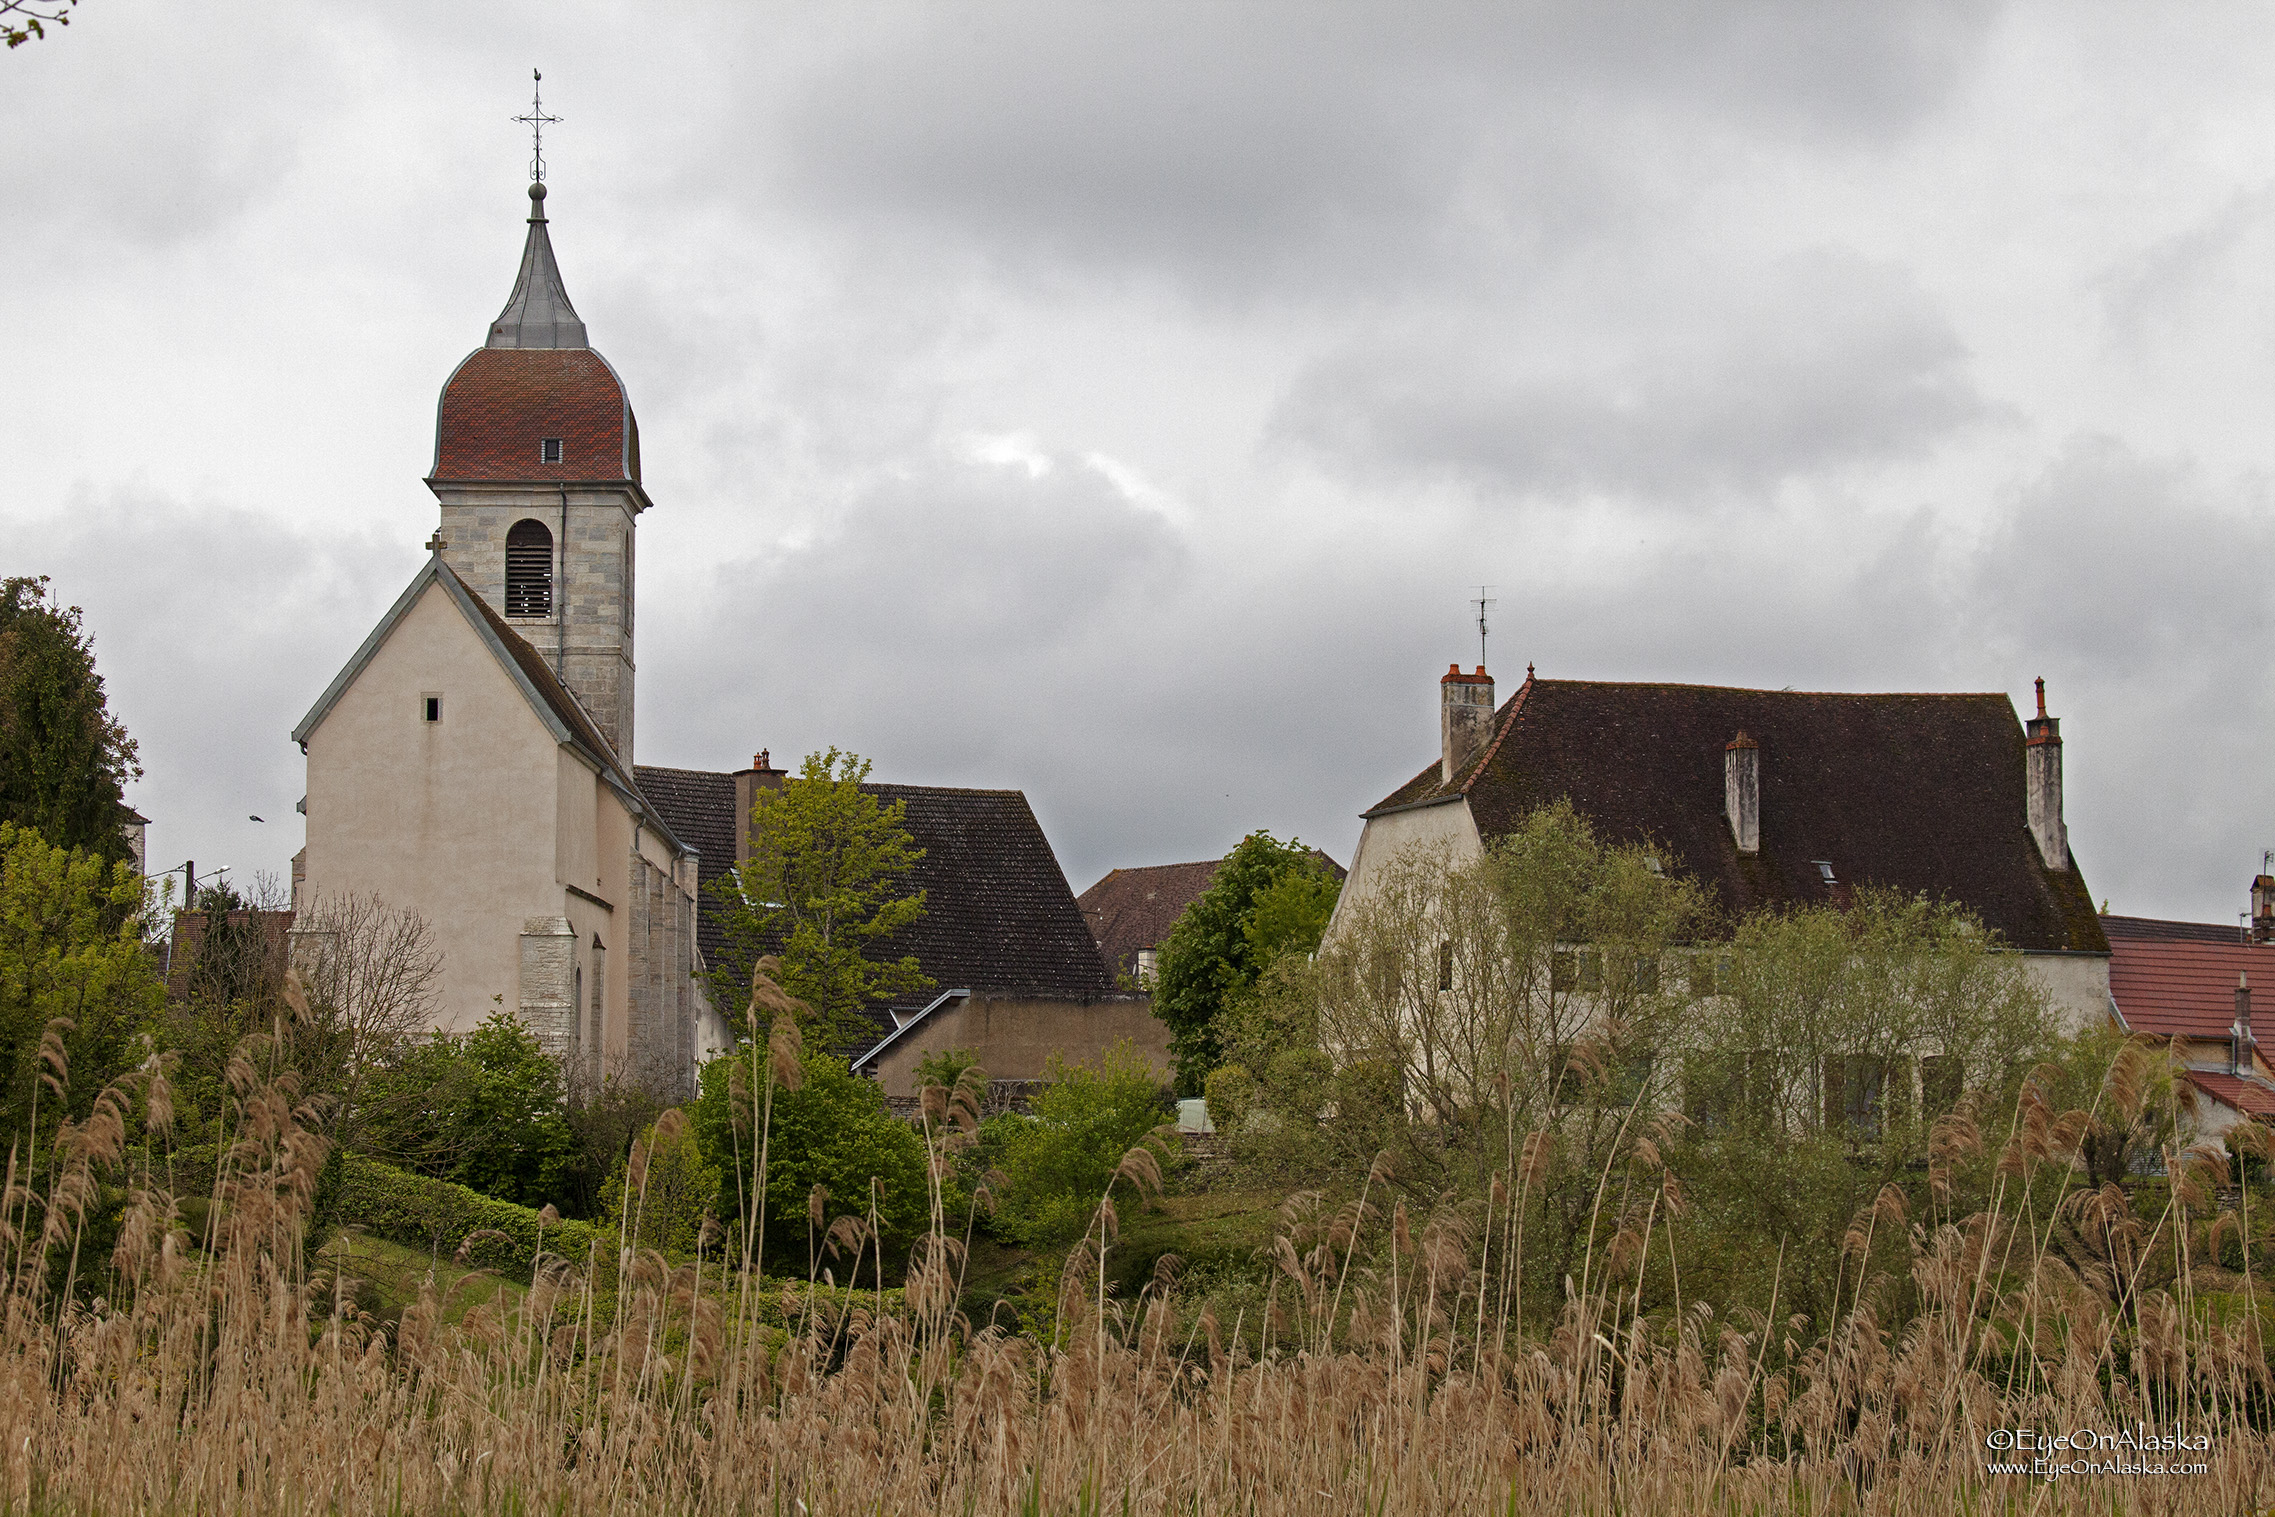 The village of Baverans from the canal.  A typical Franche-Comté bell tower on the church.  The varnished tile domes are particular to this region.